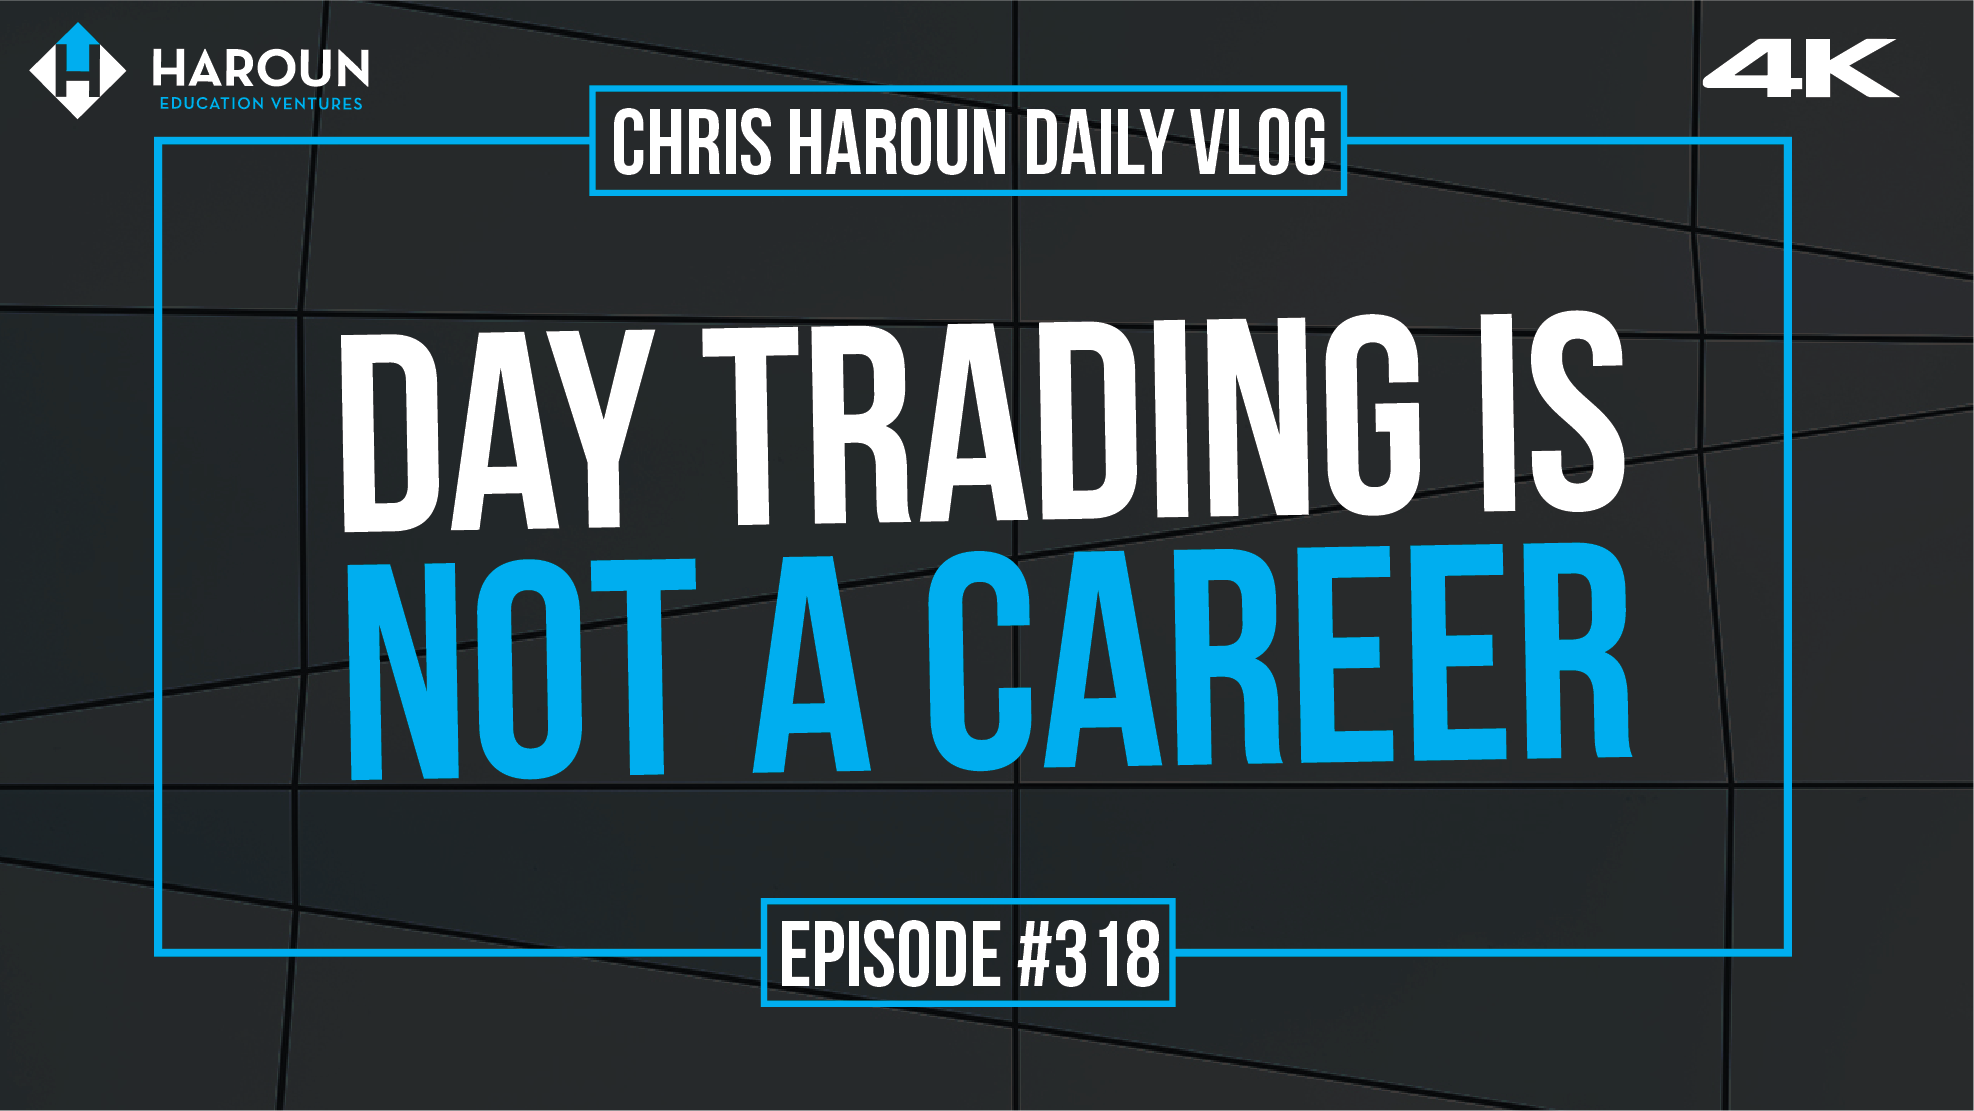 VLOG_318_6_14_2019_Day Trading is Not a Career.png